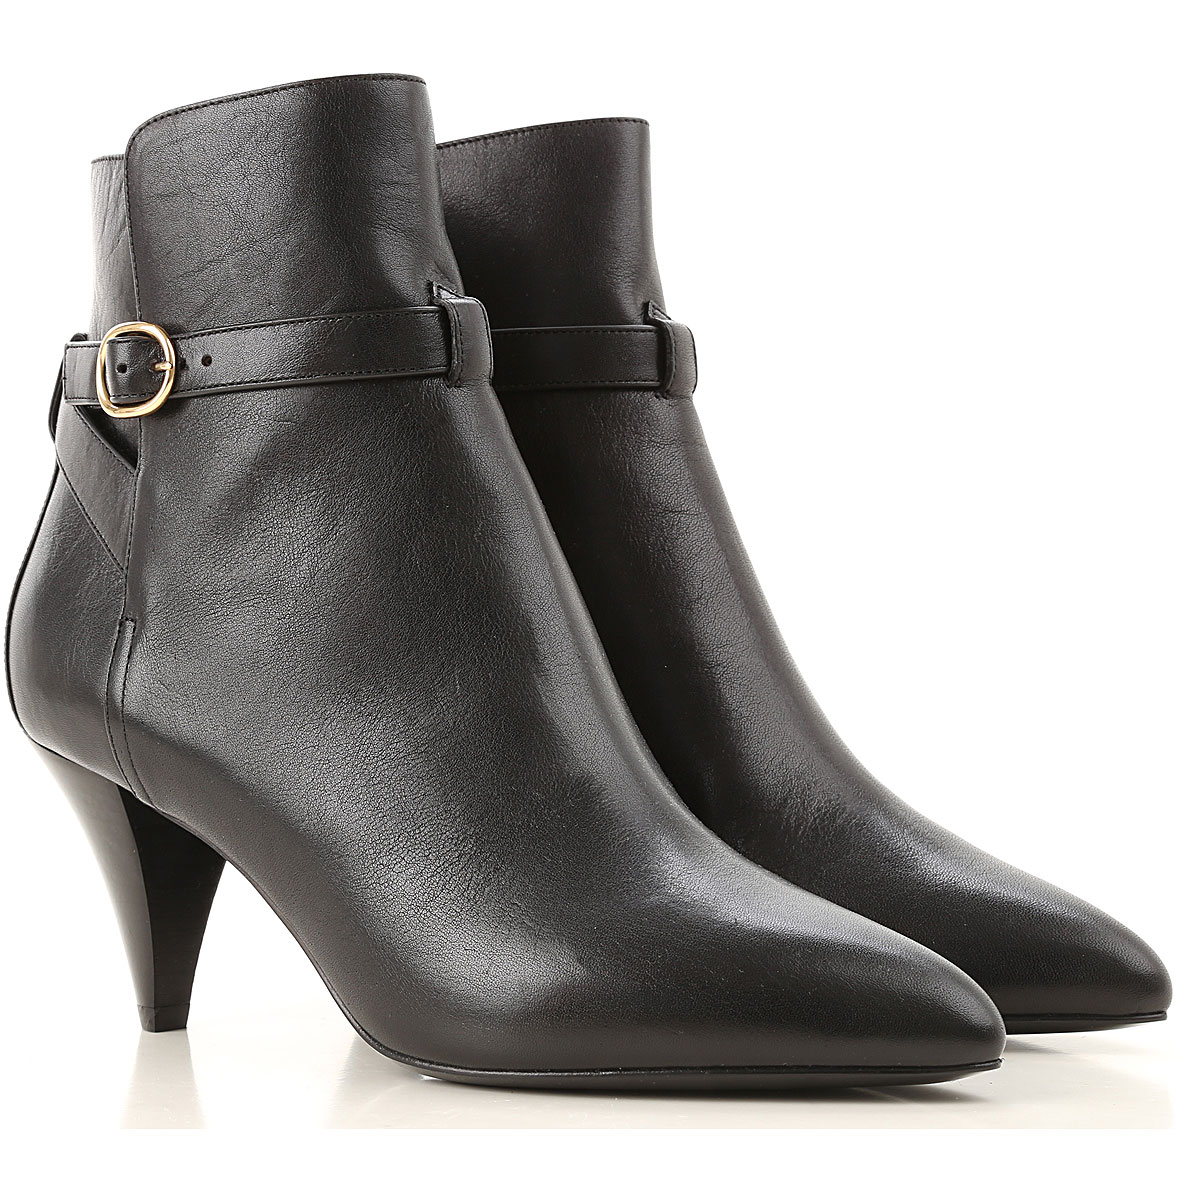 Celine Boots for Women, Booties On Sale, Black, Leather, 2019, 11 5.5 6.5 7 8 9 9.5